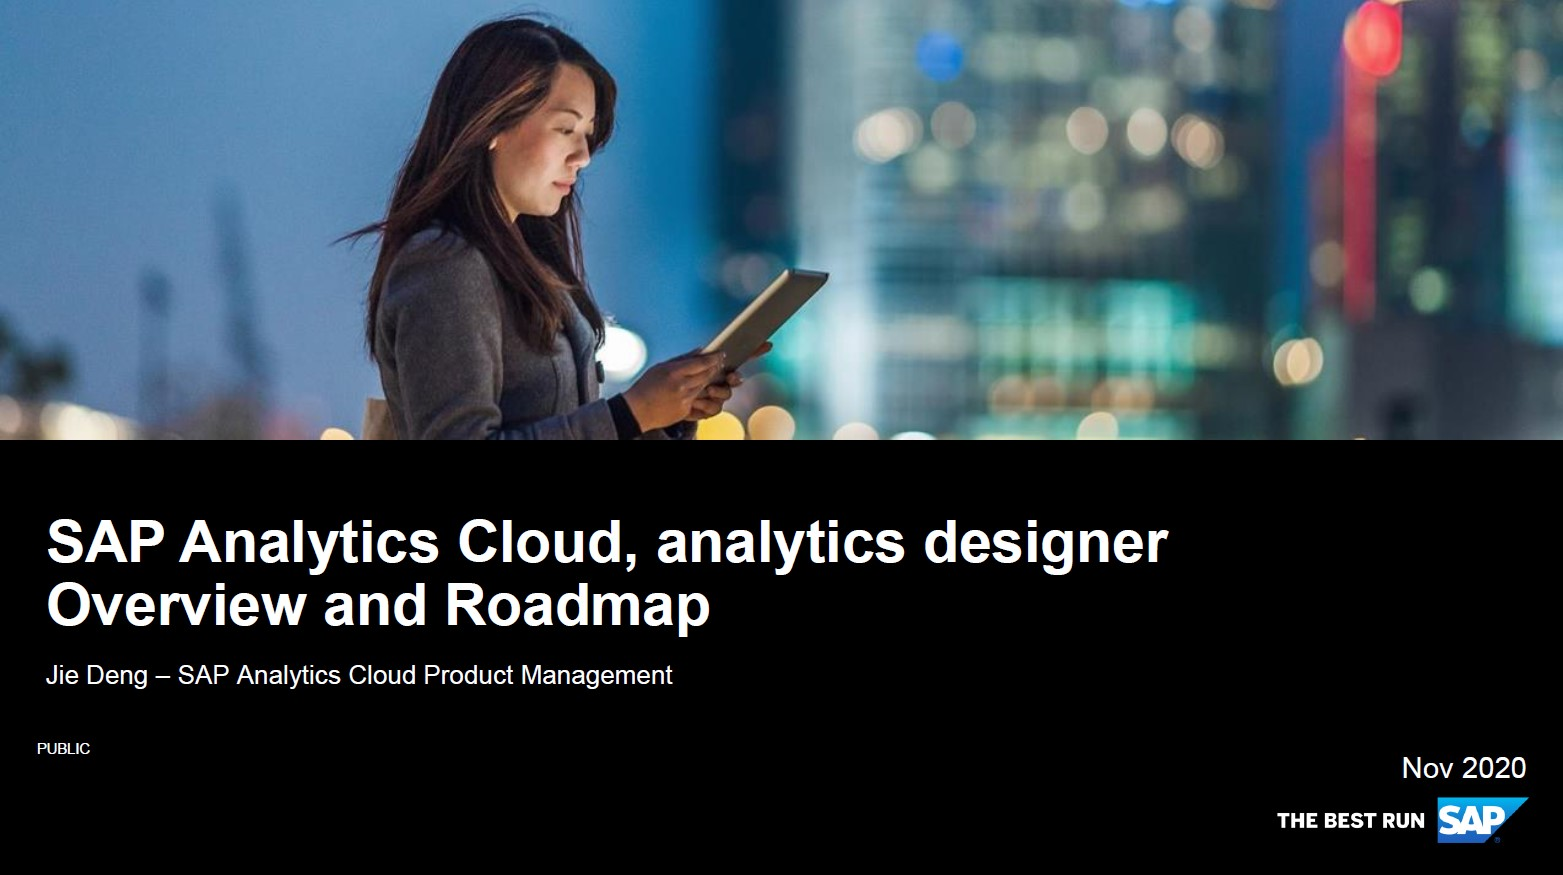 Coverfolie des Vortrags zu sap analytics designer